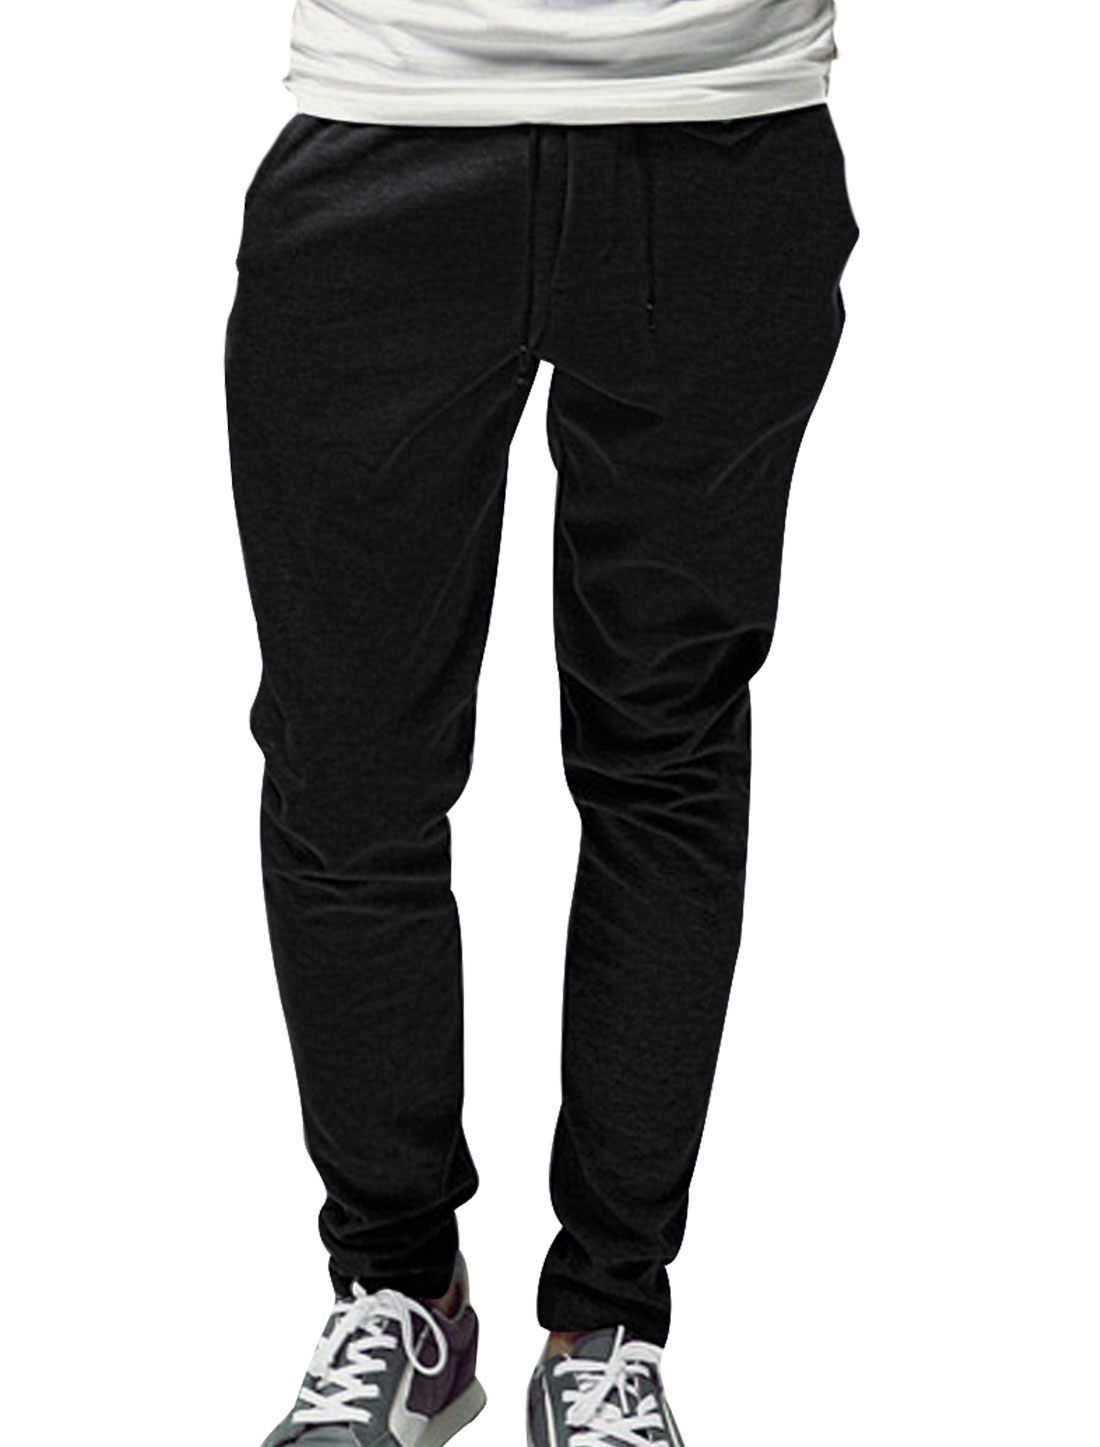 Men Casual Low Waist Zip Fly Seam Pockets Fleece Black Pants W32